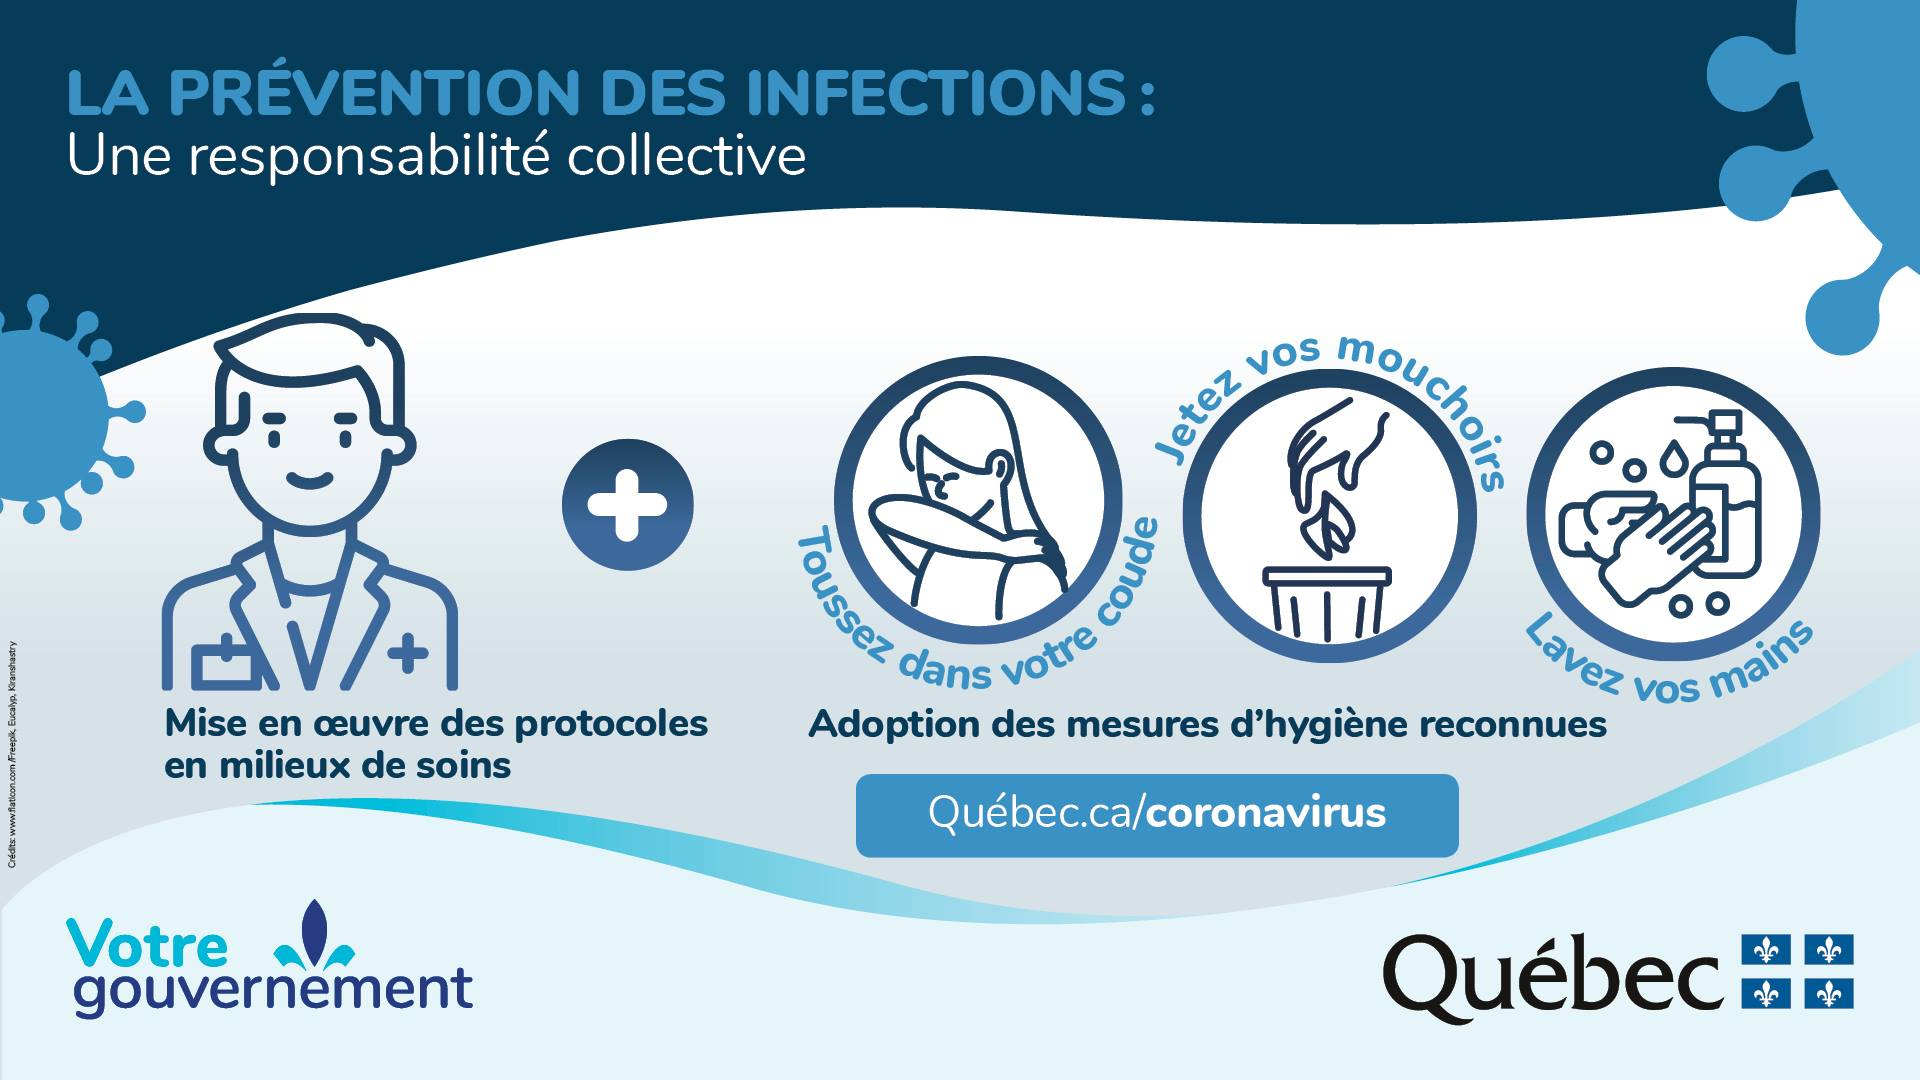 https://fipeq.org/wp-content/uploads/sites/18/2020/03/infographie-coronavirus-infections.jpg